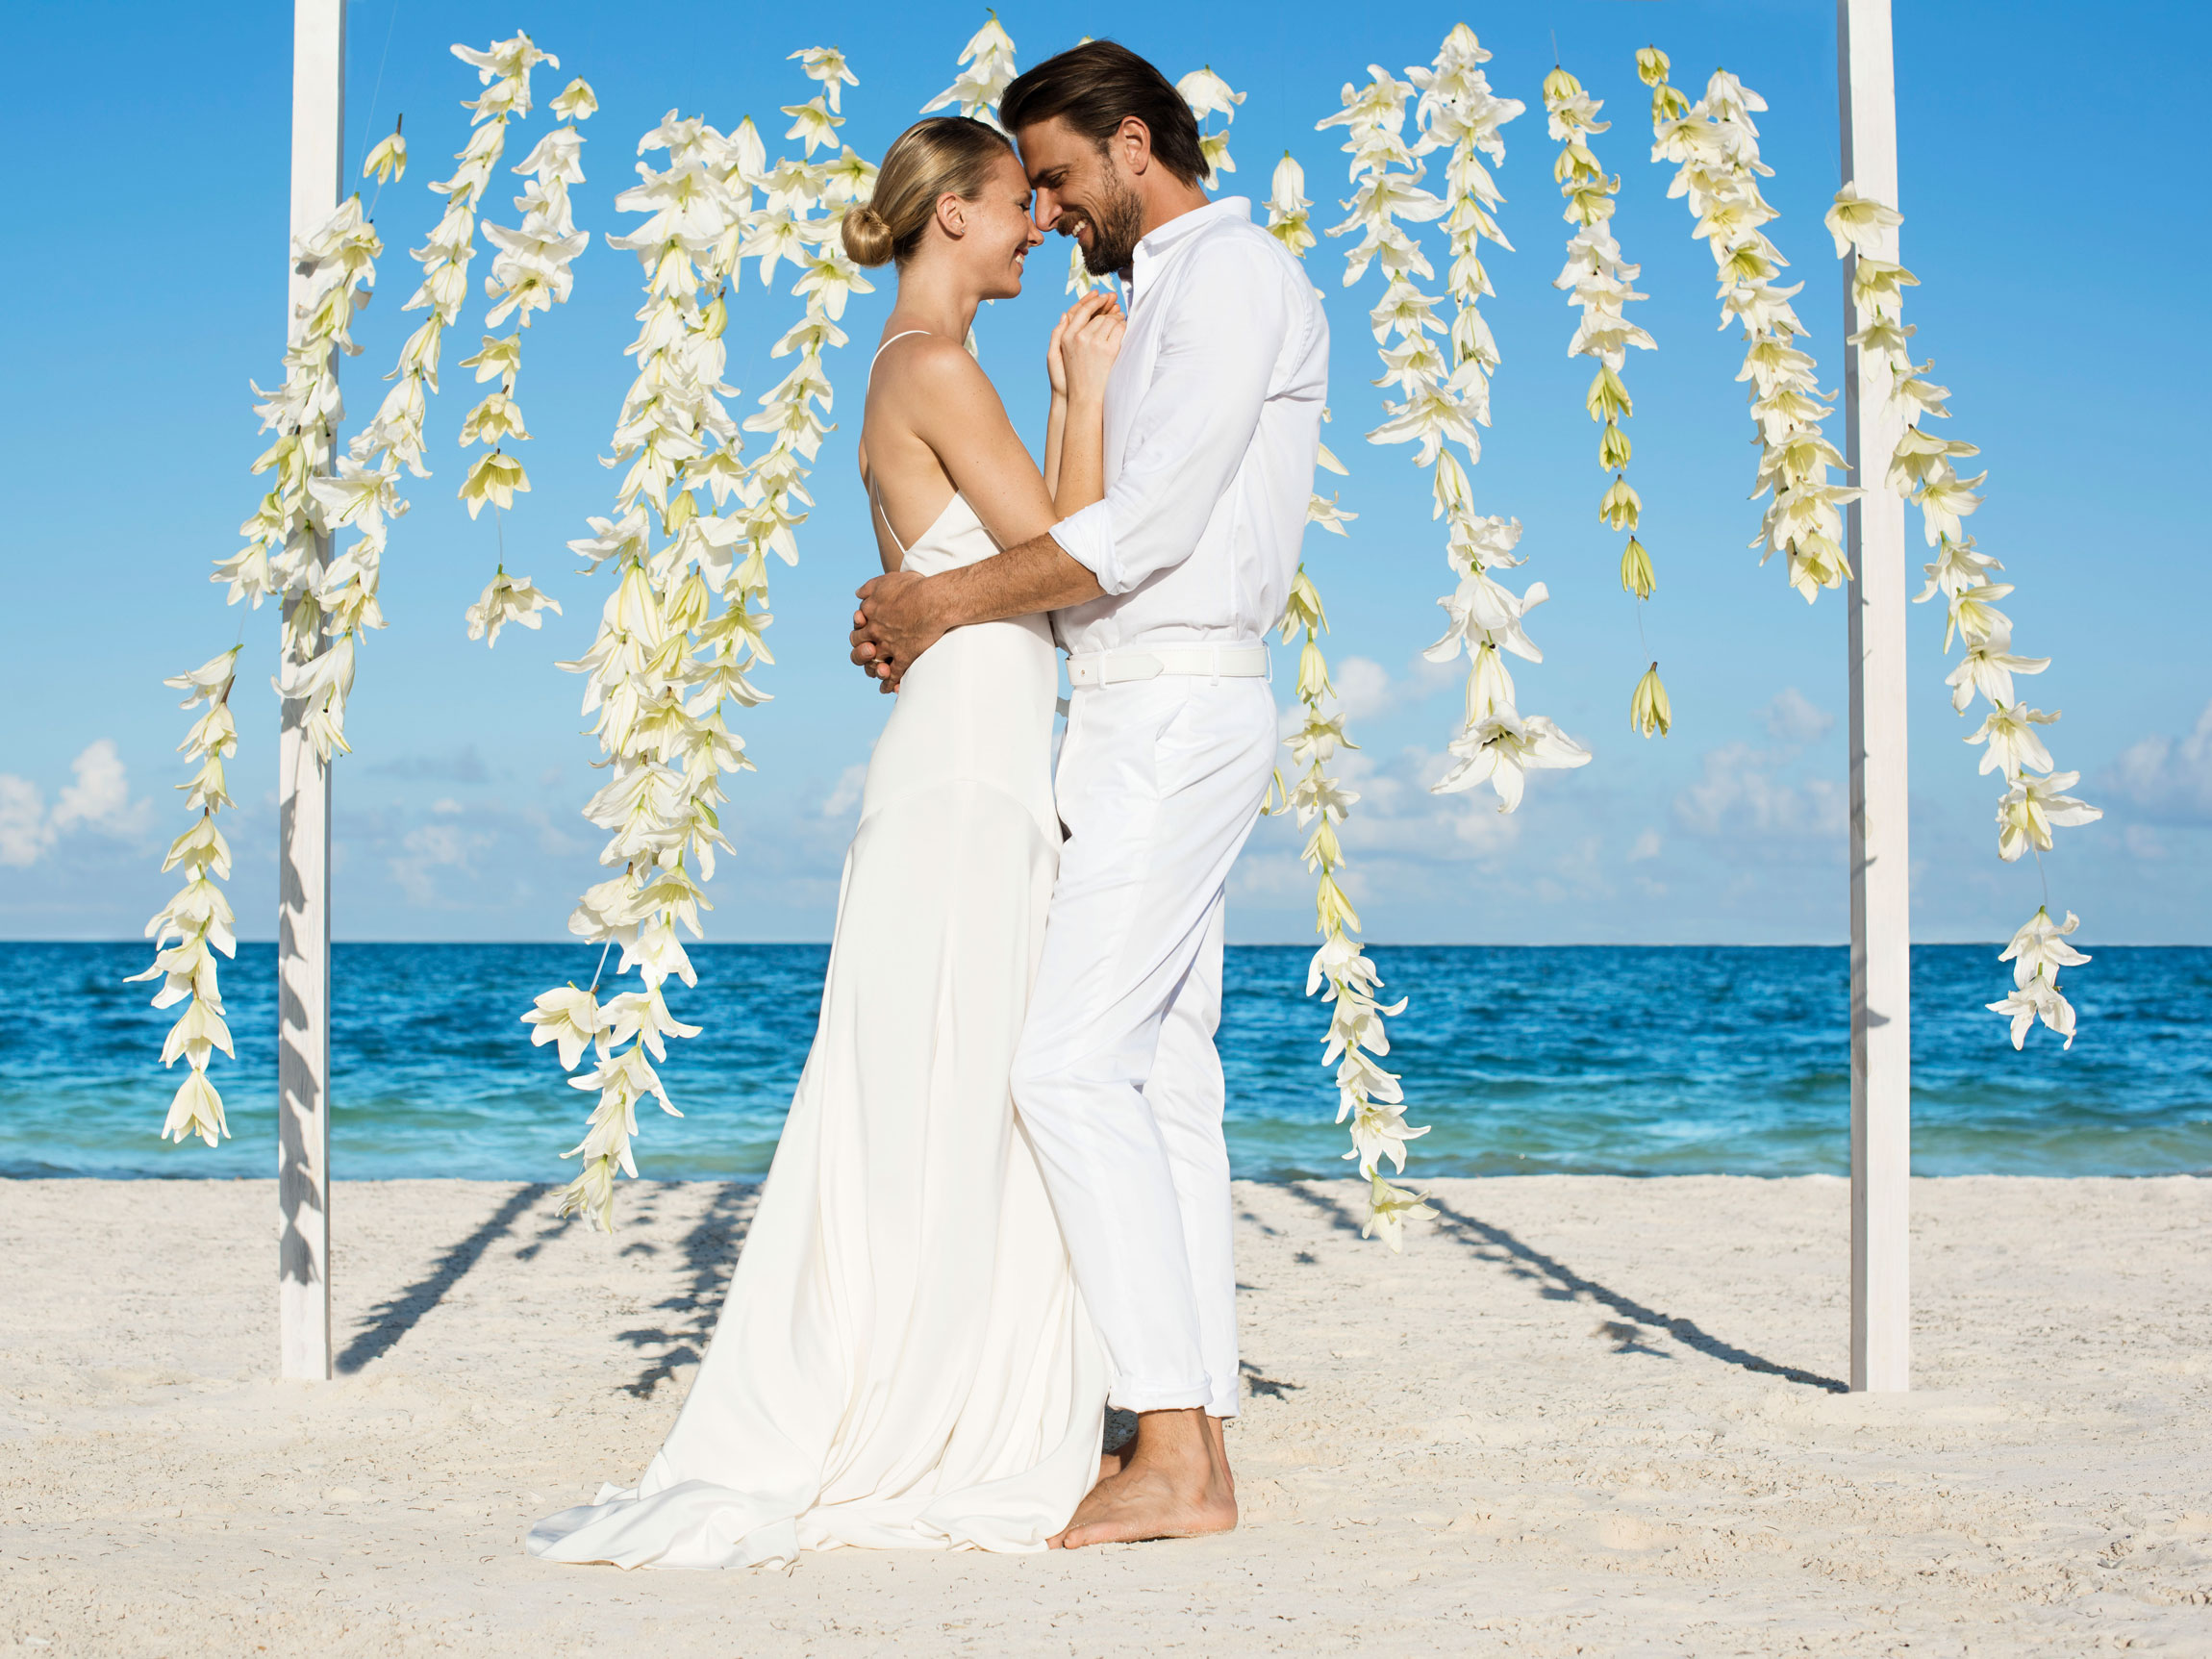 Destination Wedding Scouting Special Offer